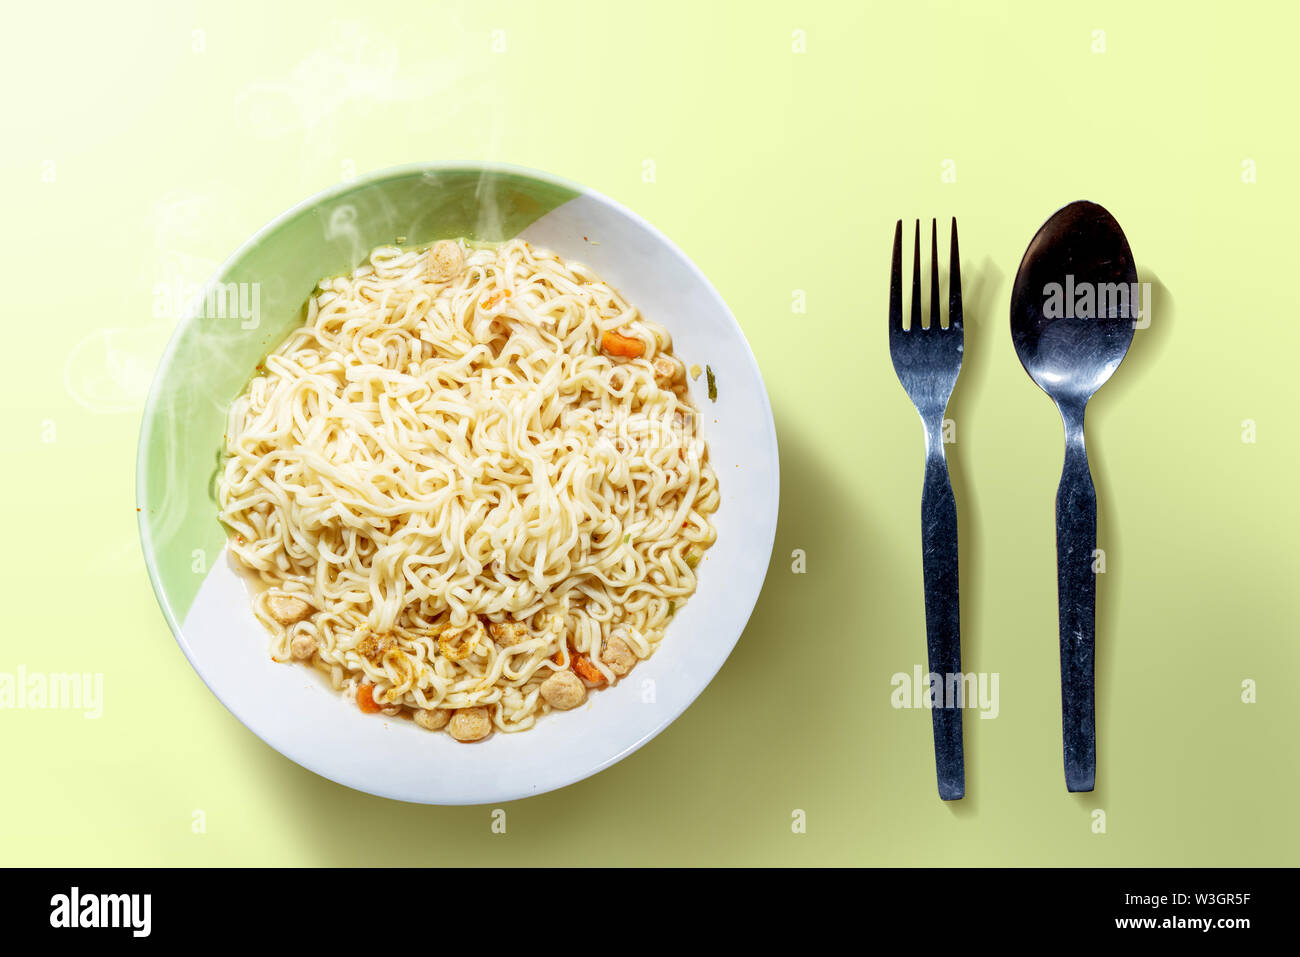 Noodles on the bowl with spoon and fork on green background - Stock Image